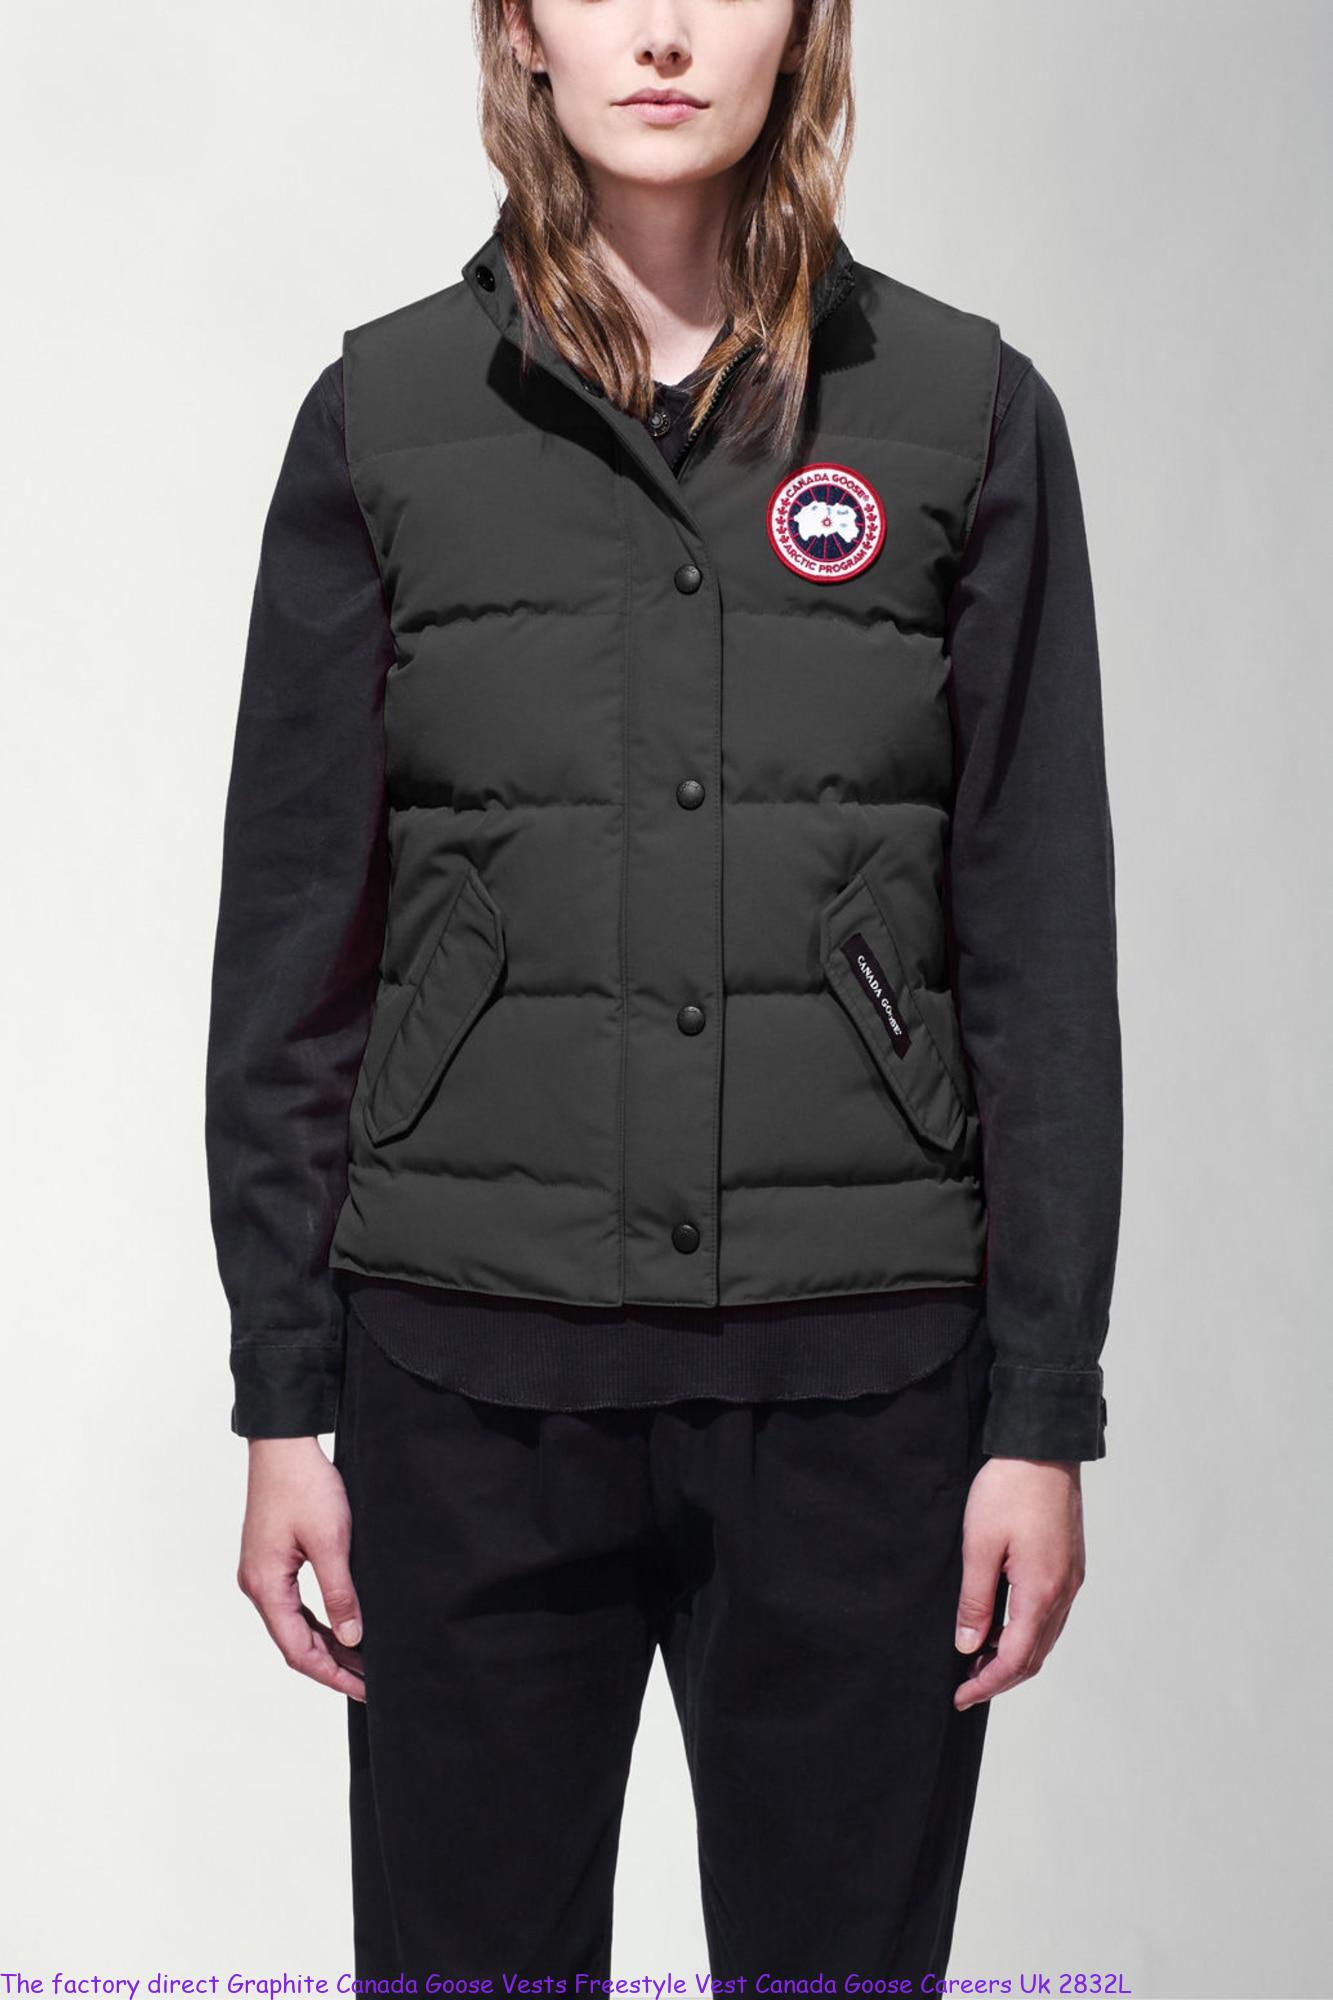 The factory direct Graphite Canada Goose Vests Freestyle Vest Canada Goose Careers Uk 2832L